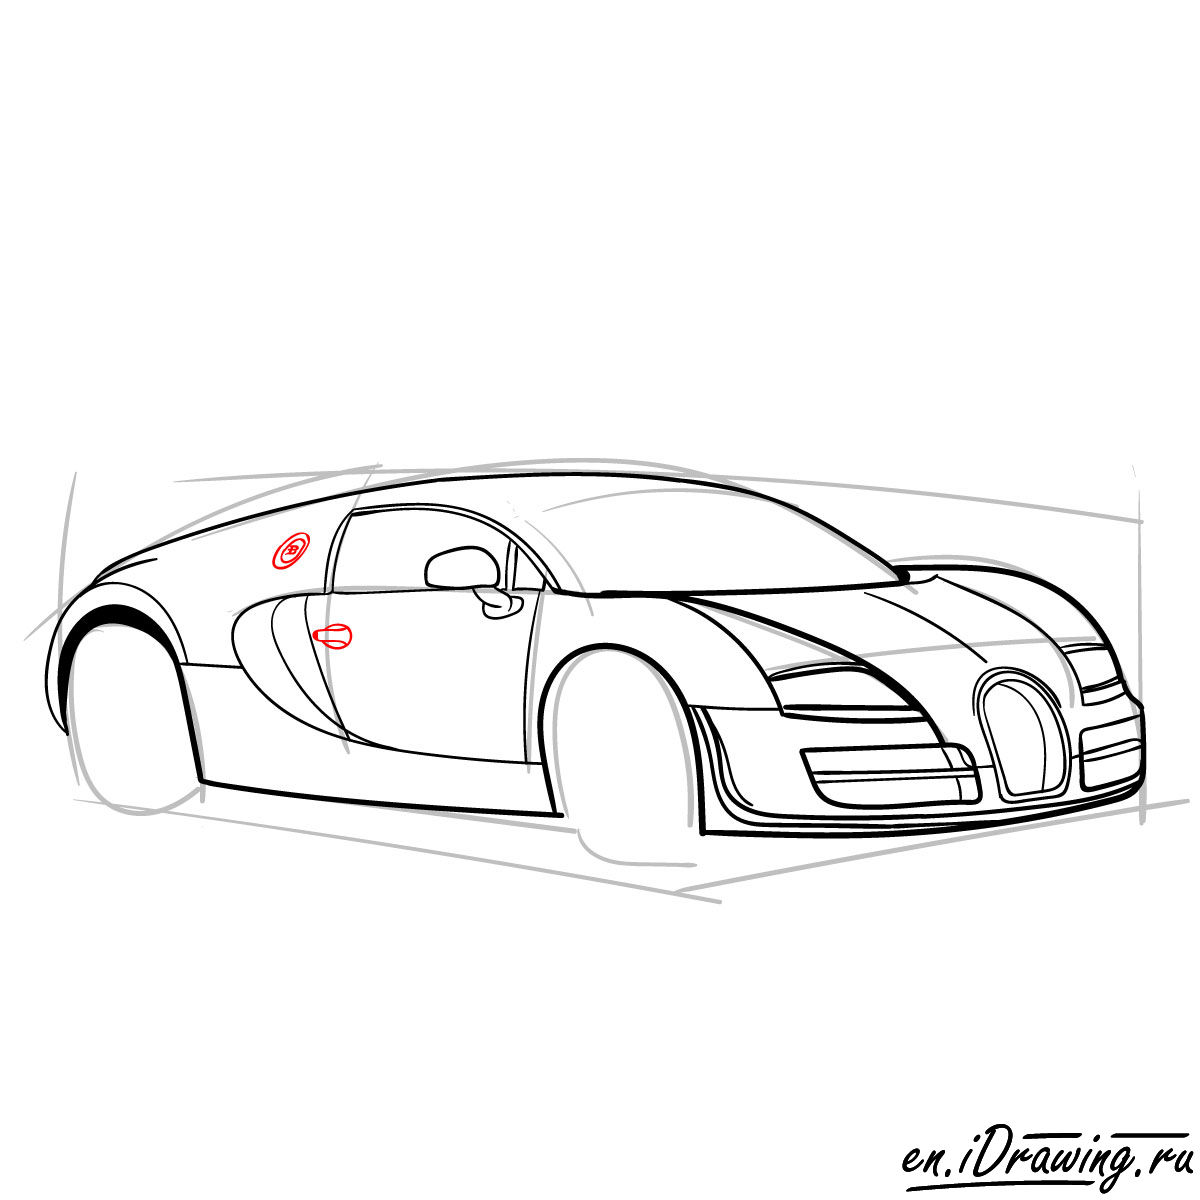 Bugatti Drawing Step By Step at GetDrawings.com | Free for personal ...